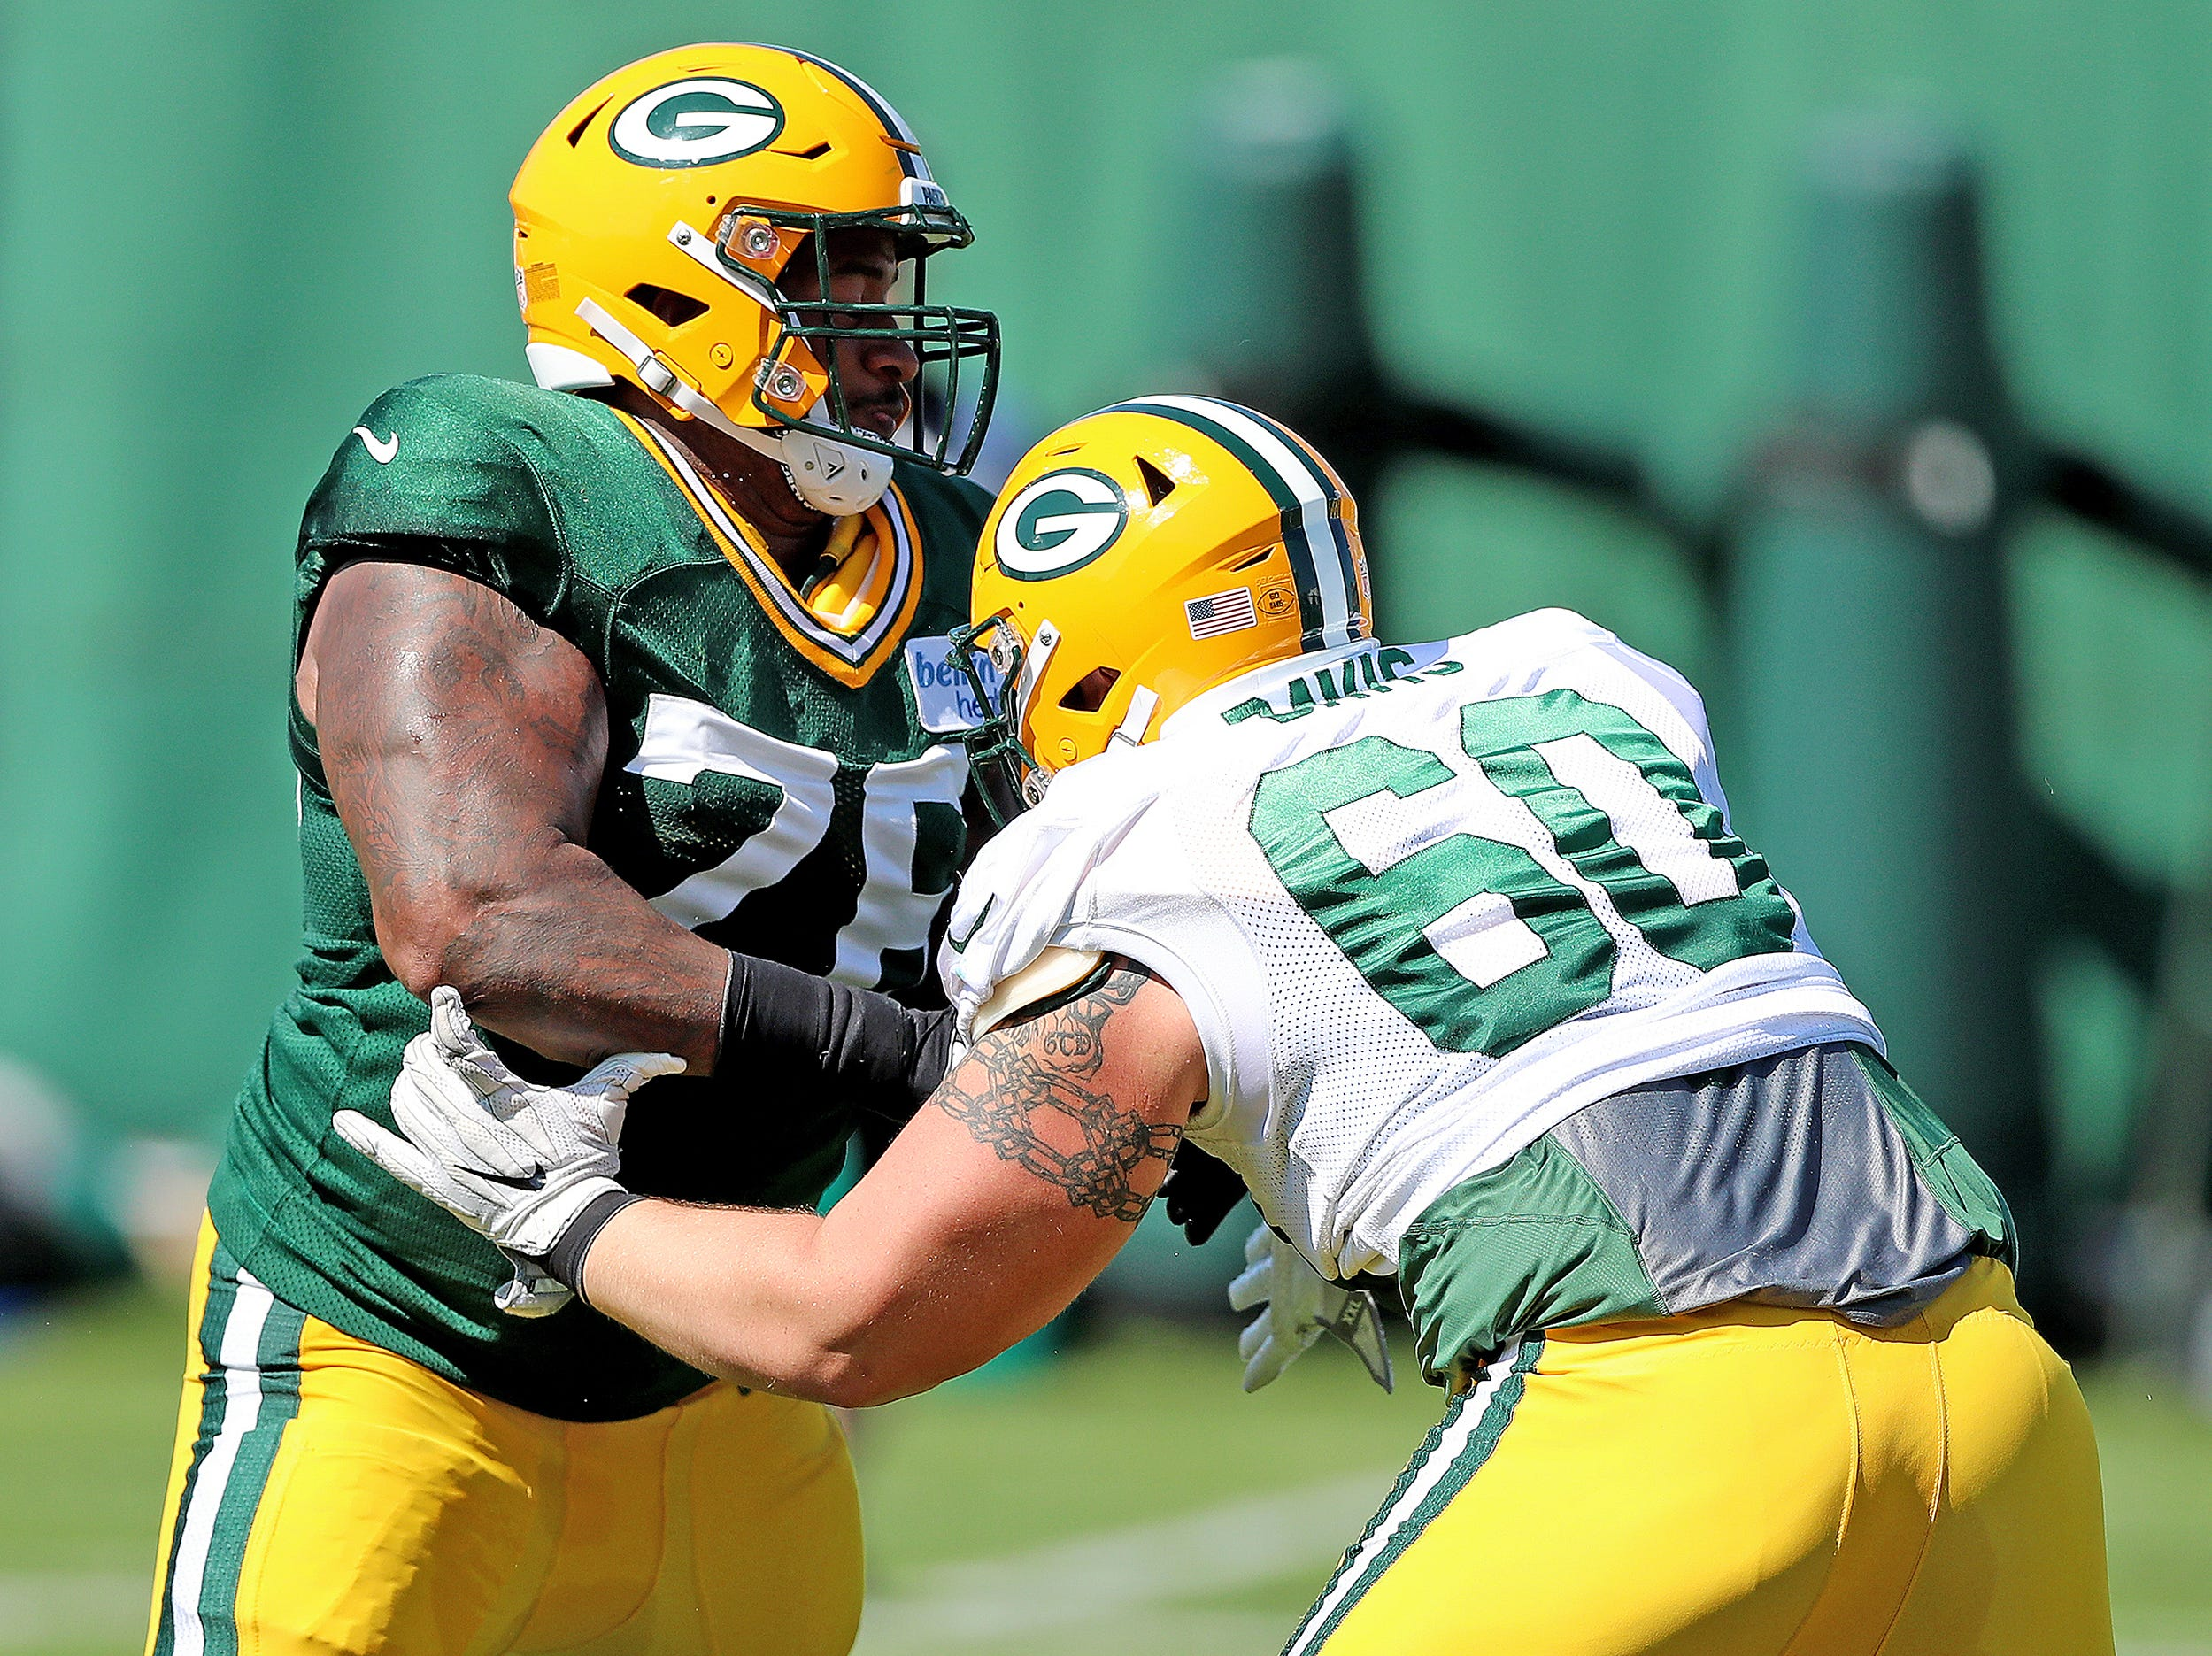 Green Bay Packers defensive tackle Mike Daniels (76) rushes against center Austin Davis (60) during practice September 13, 2018 at Clarke Hinkle Field in Ashwaubenon, WIs.